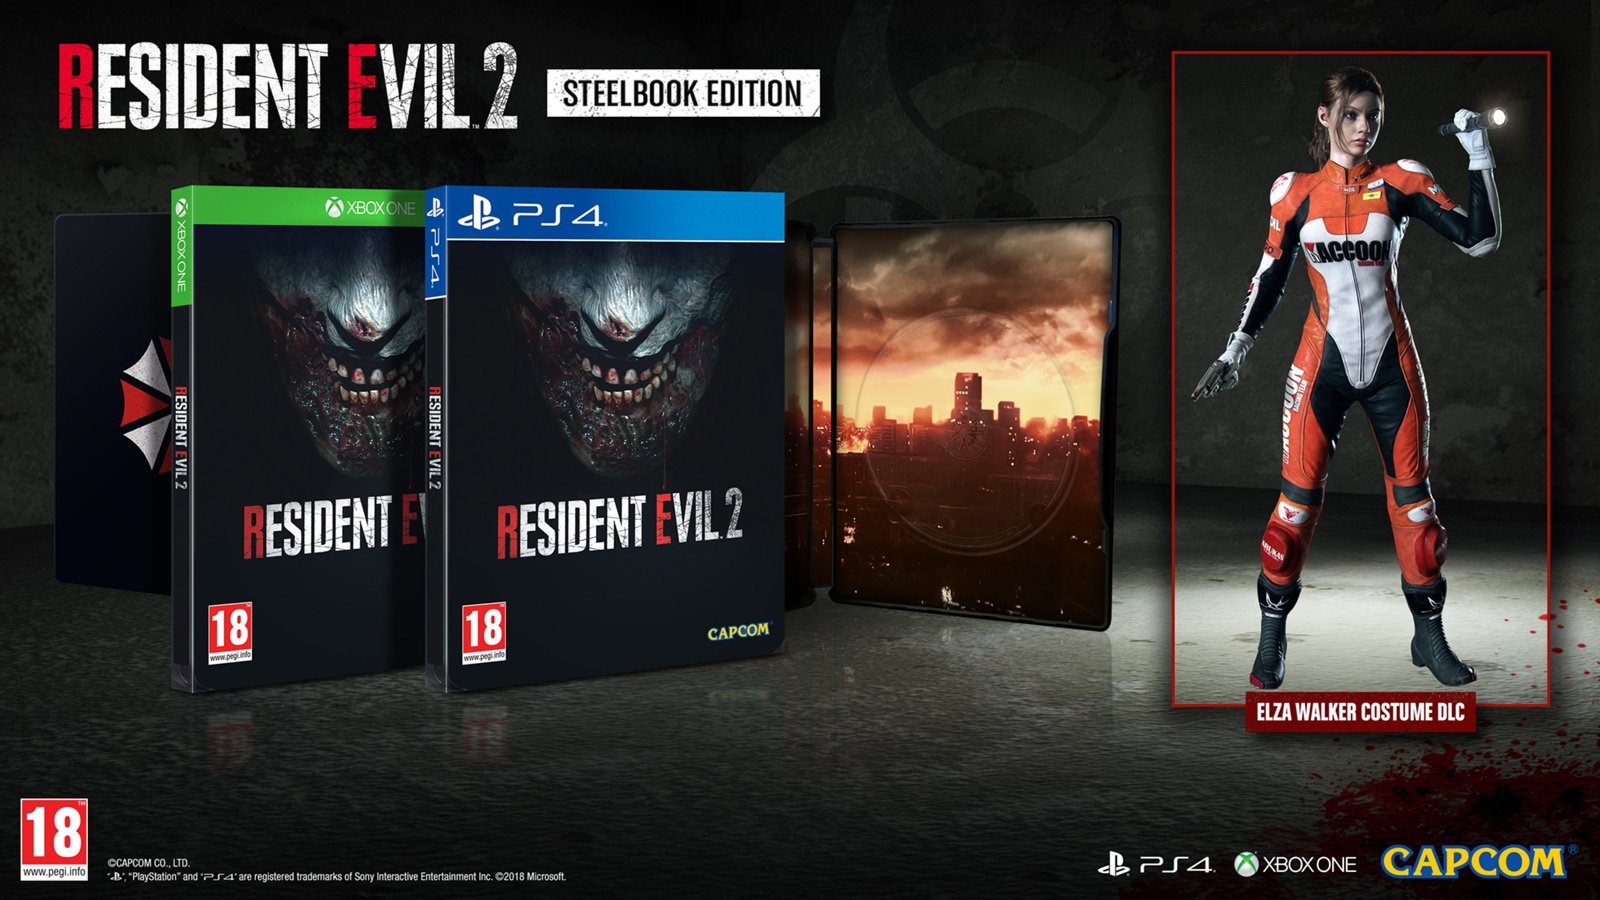 Resident Evil 2 Remake: Steelbook Edition